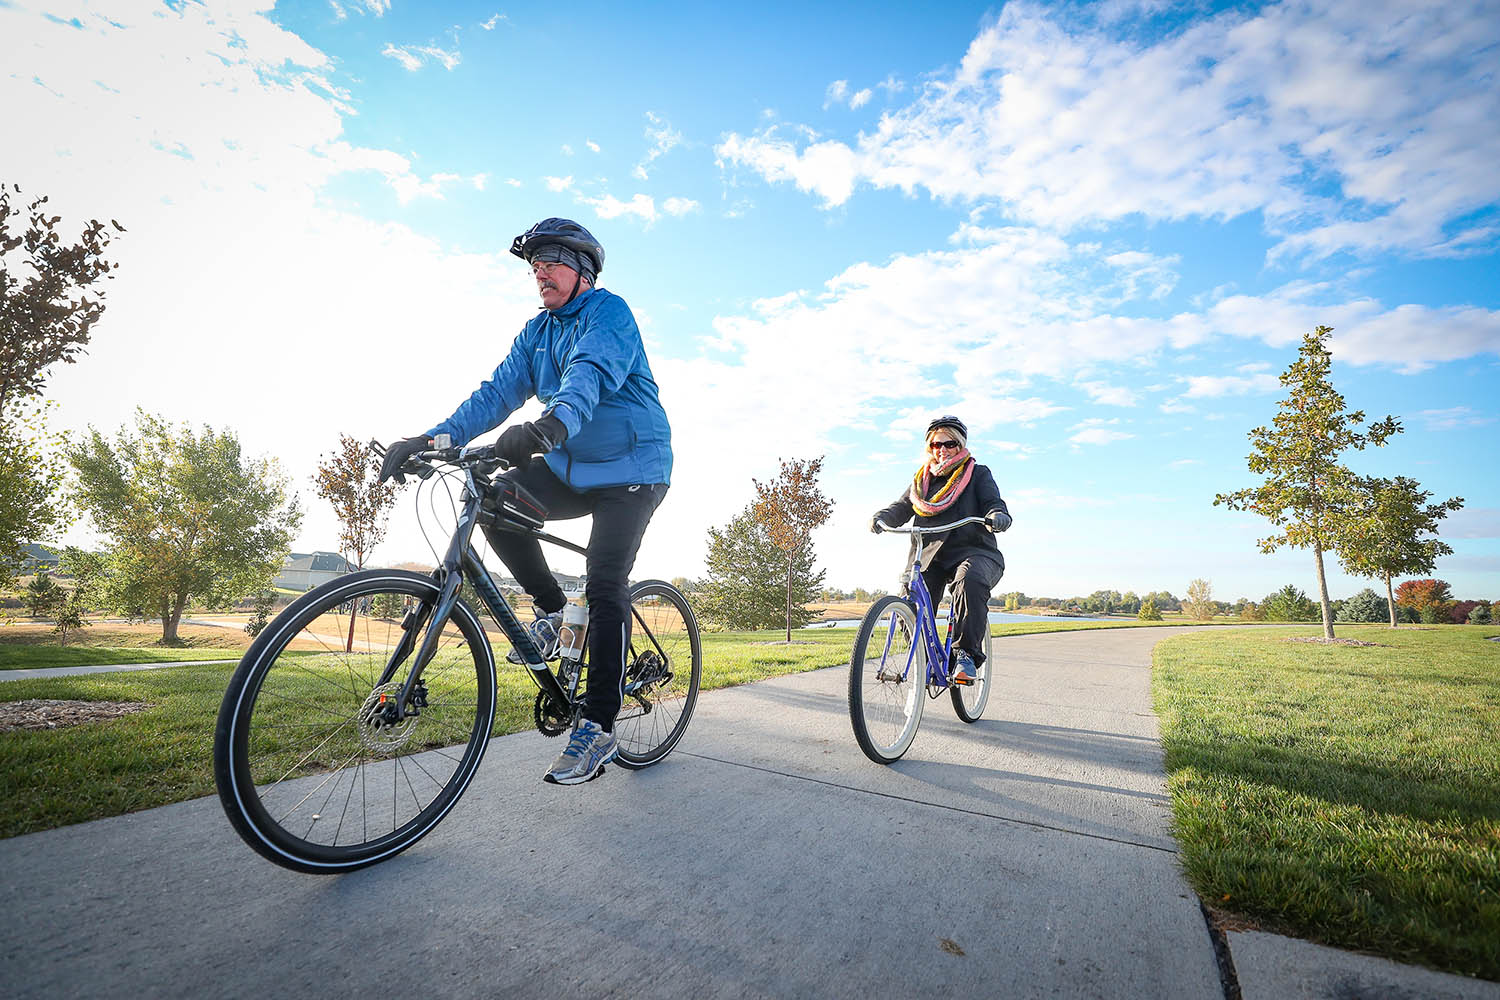 Residents of the Tri-Cities area enjoy a high quality of life, according to the Nebraska Thriving Index, which noted the region's abundance of trails and parks.